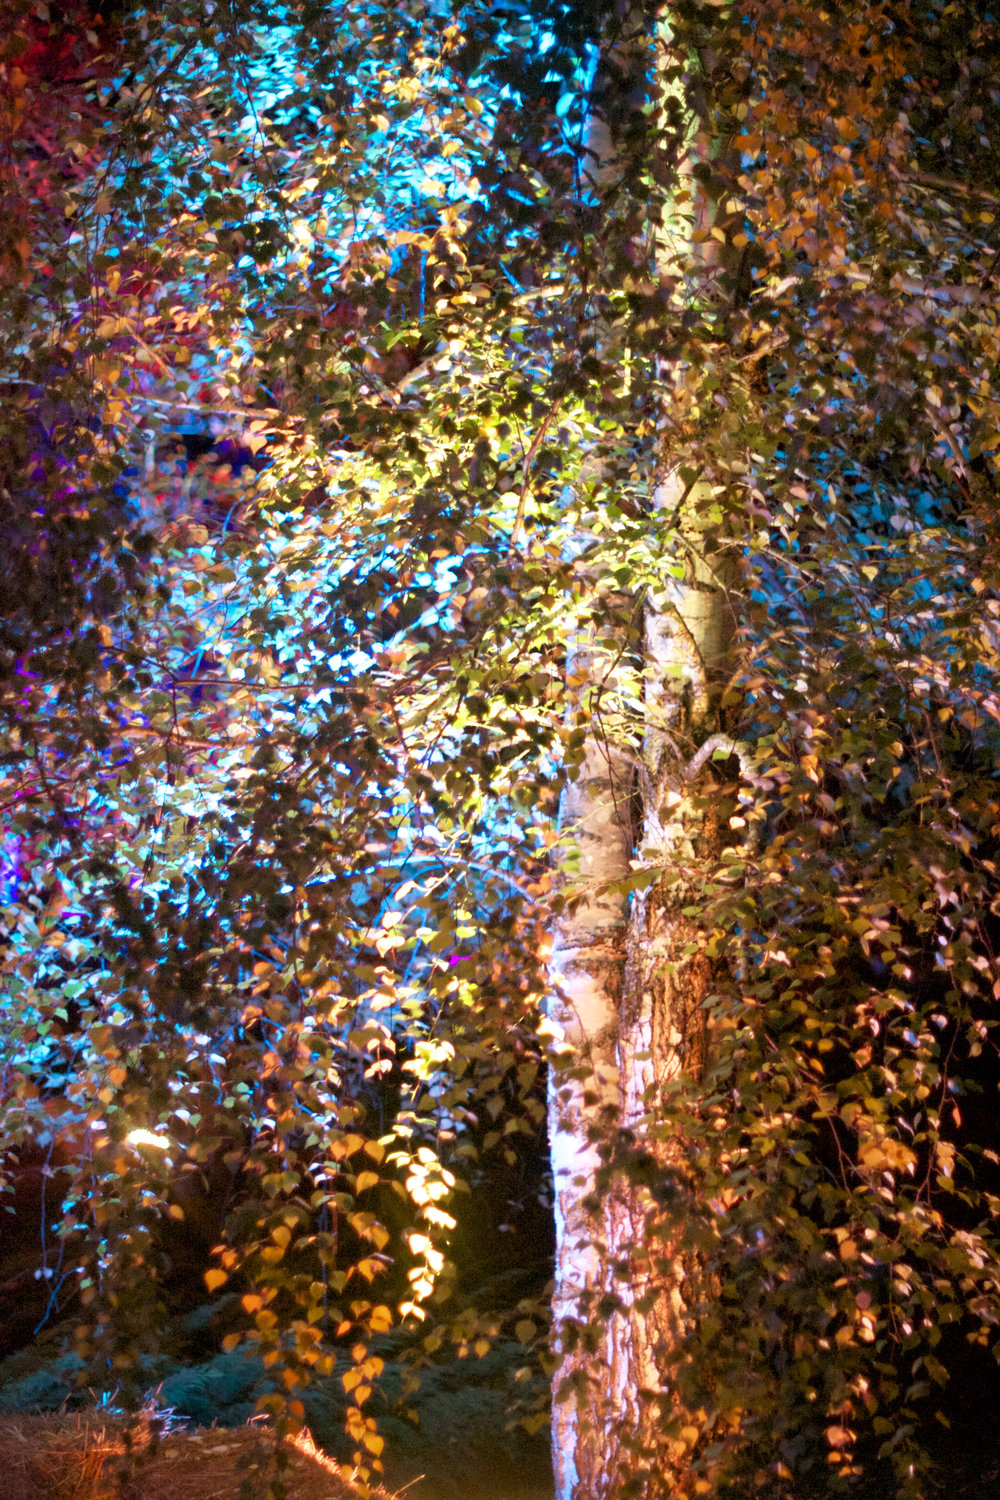 lit-up-awesome-autumn-leaves.jpg